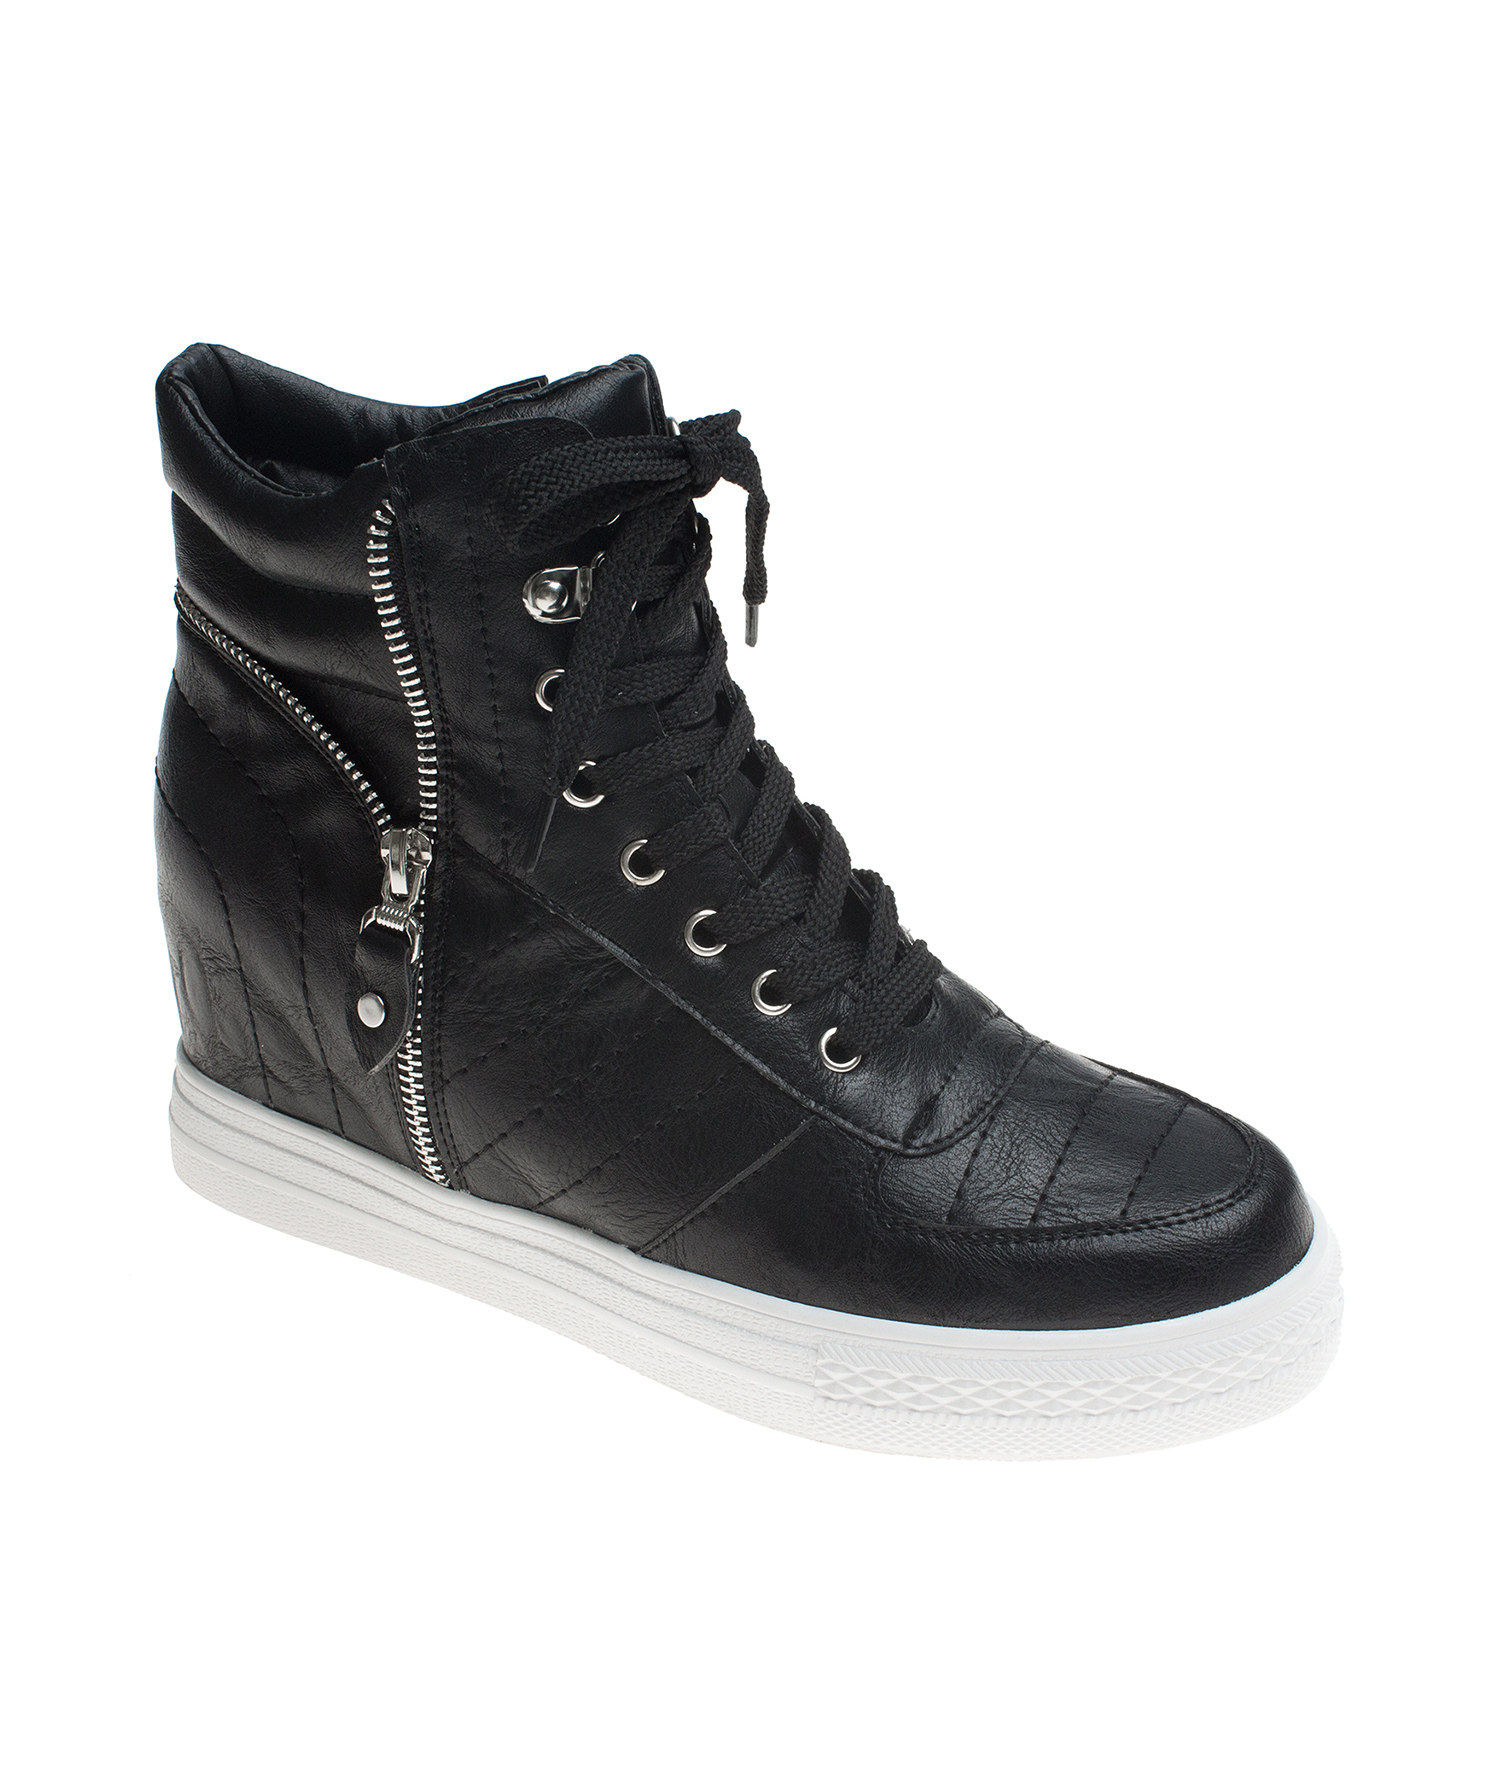 Quilted Faux Leather Wedge Sneakers Annakastleshoes Com